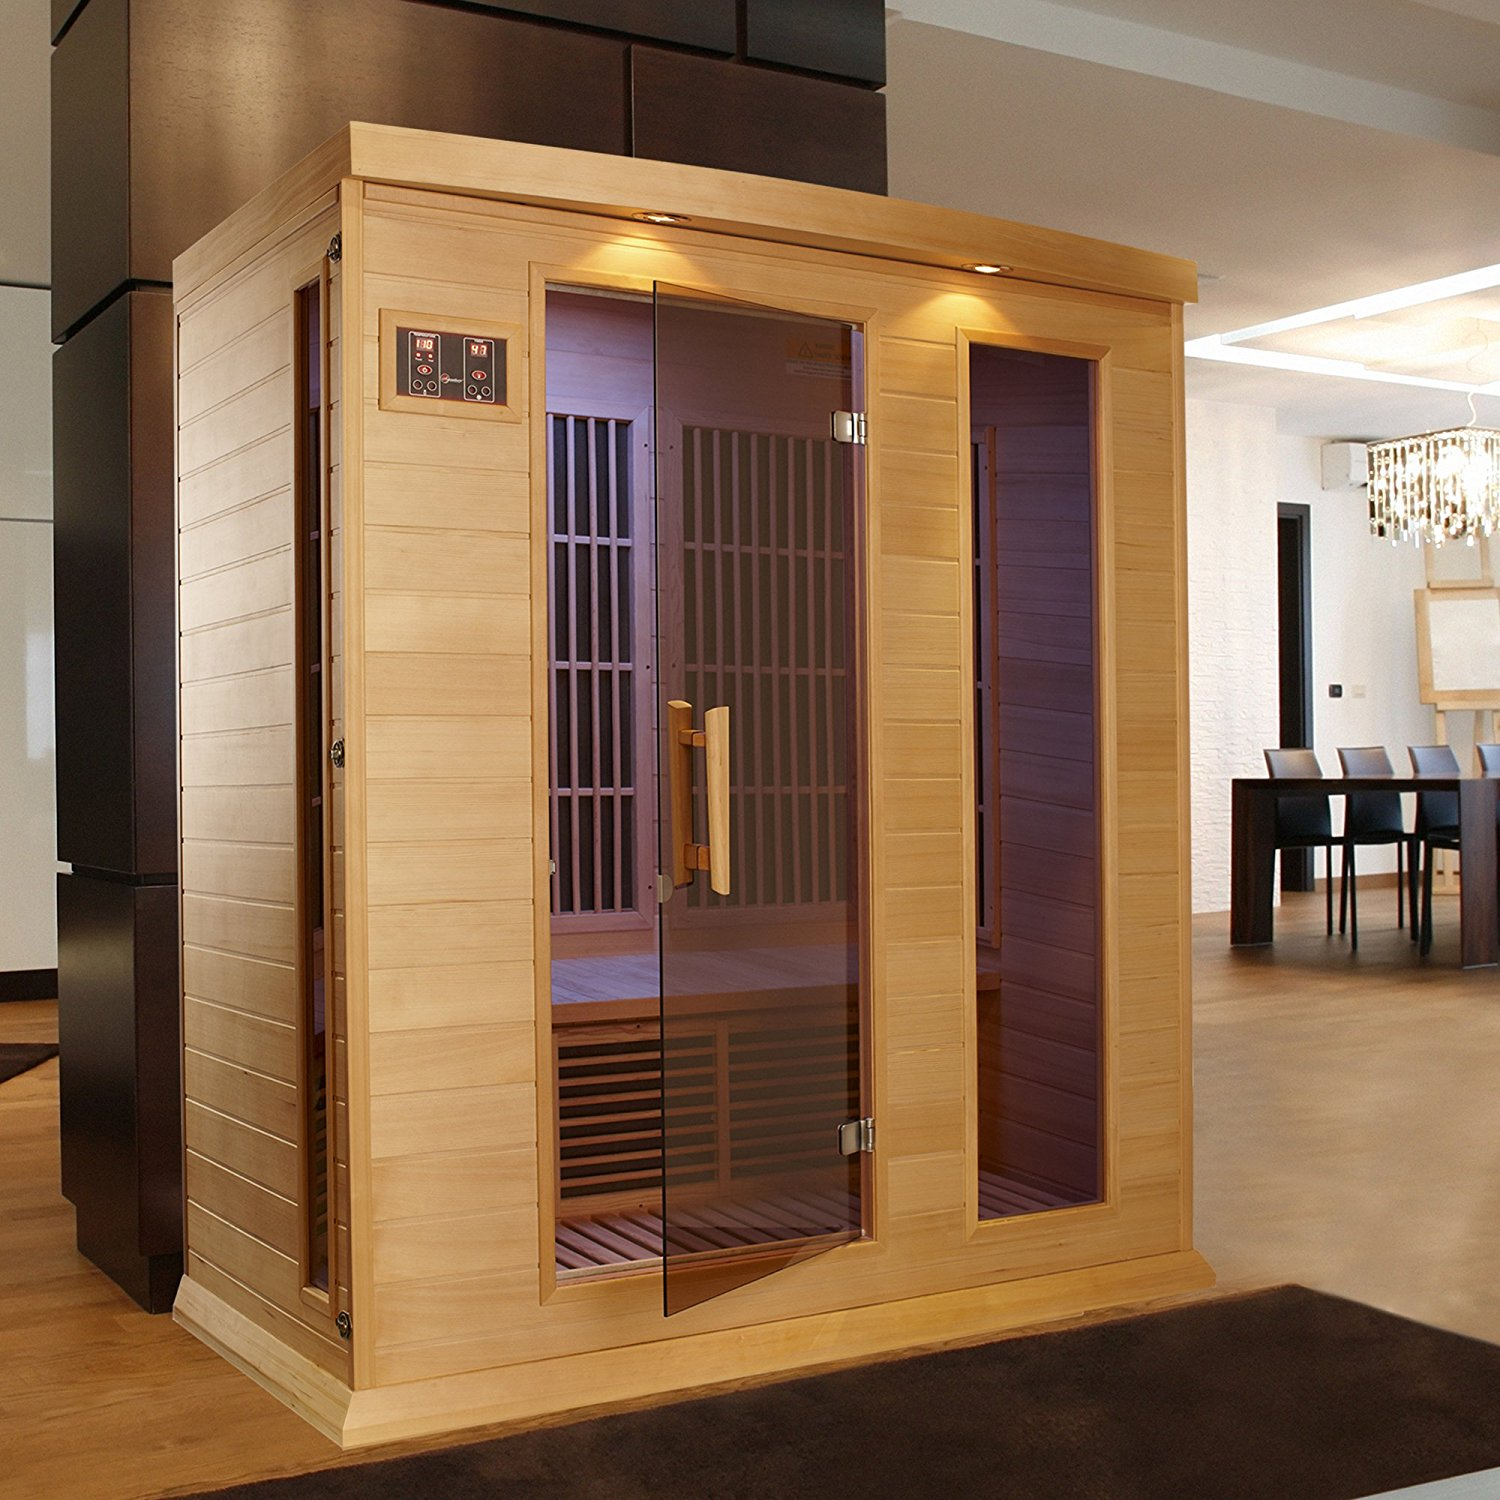 dynamic-saunas-maxxus-marseille-3-person-far-infrared-sauna